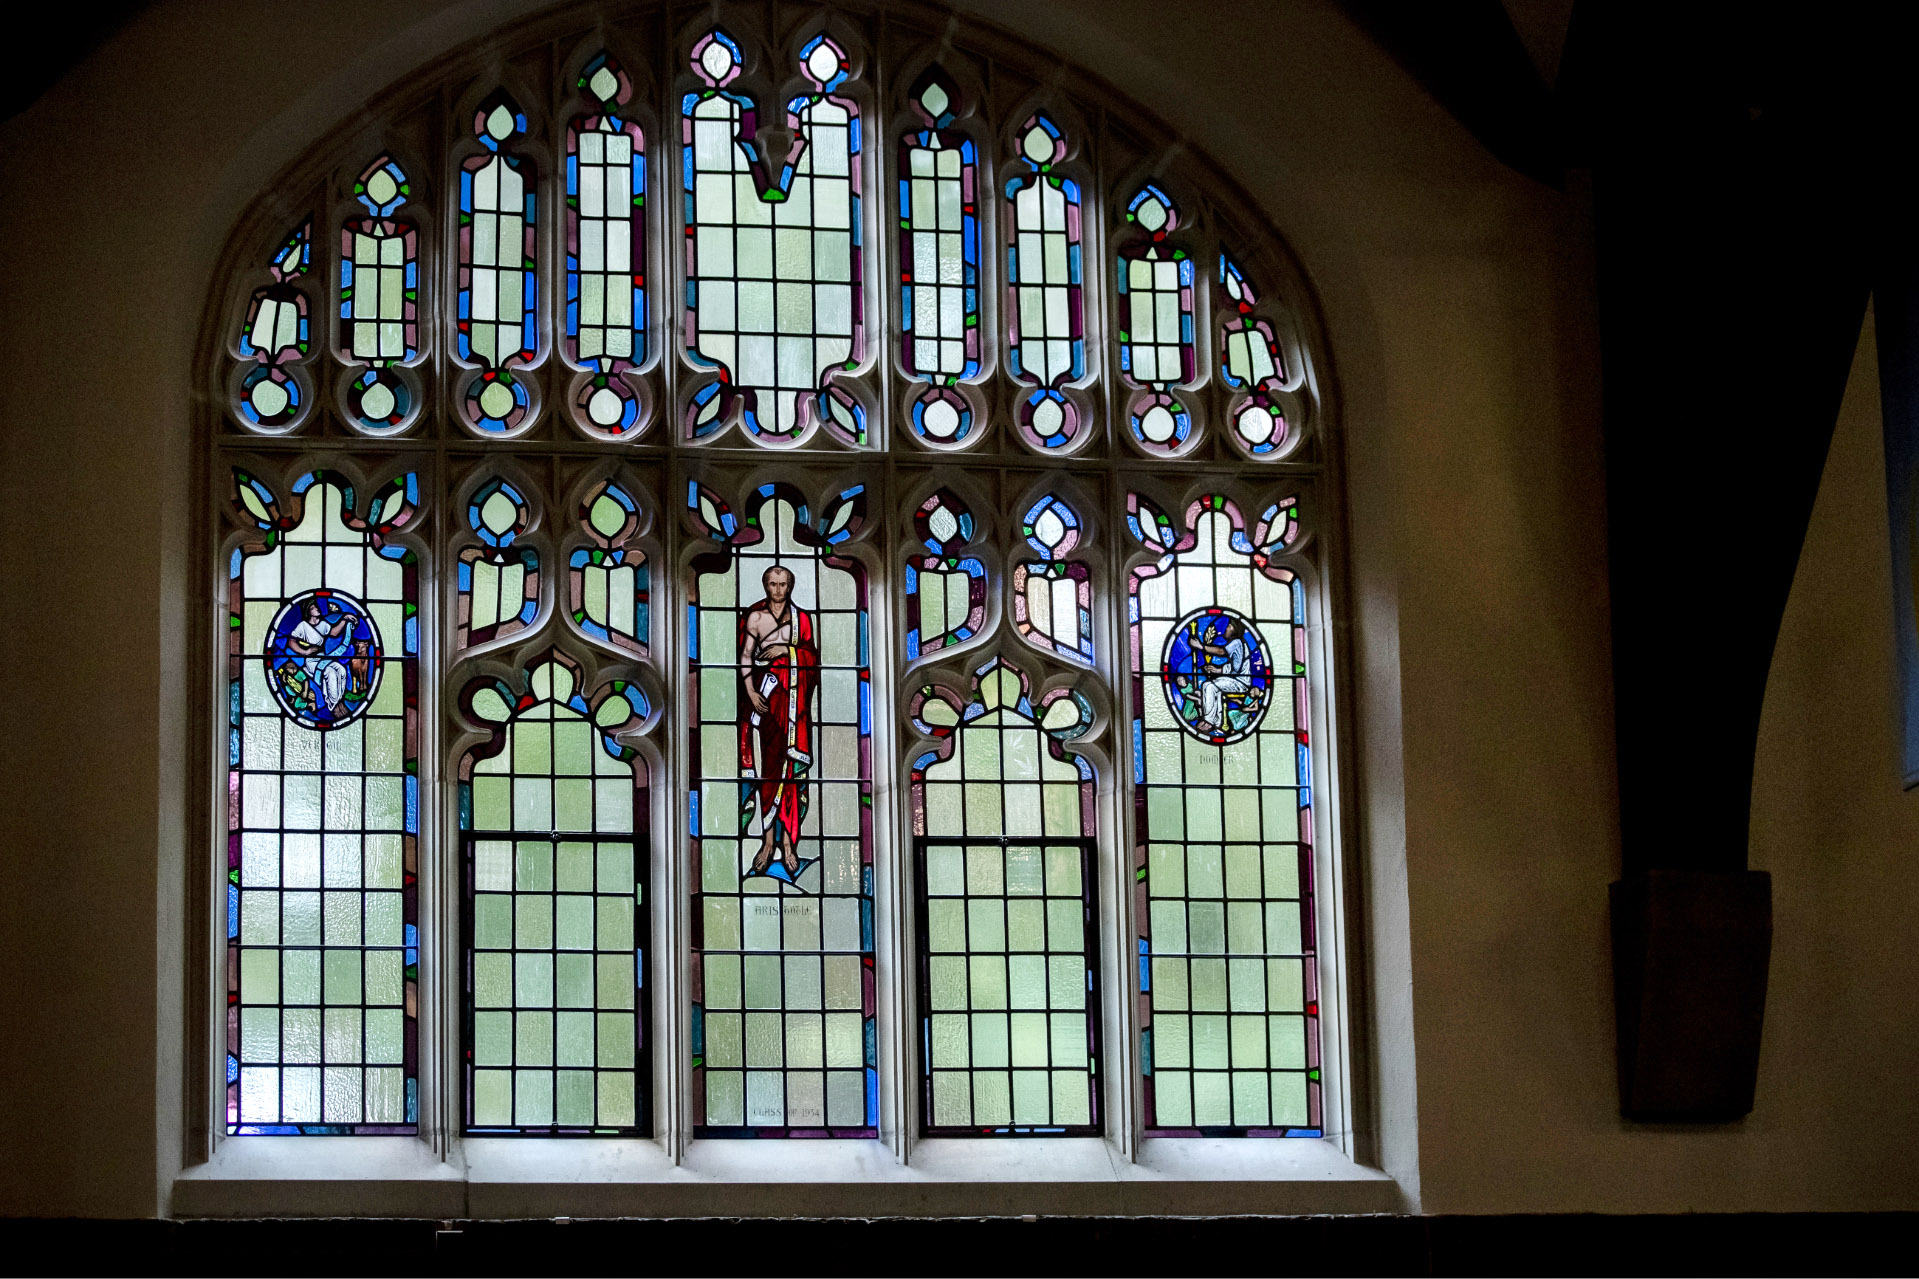 Brilliant restored images of Virgil, Aristotle, and Homer look on during a reopening ceremony for the Peter J. Gomes Chapel on Sept. 2, 2020. (Phyllis Graber Jensen/Bates College)